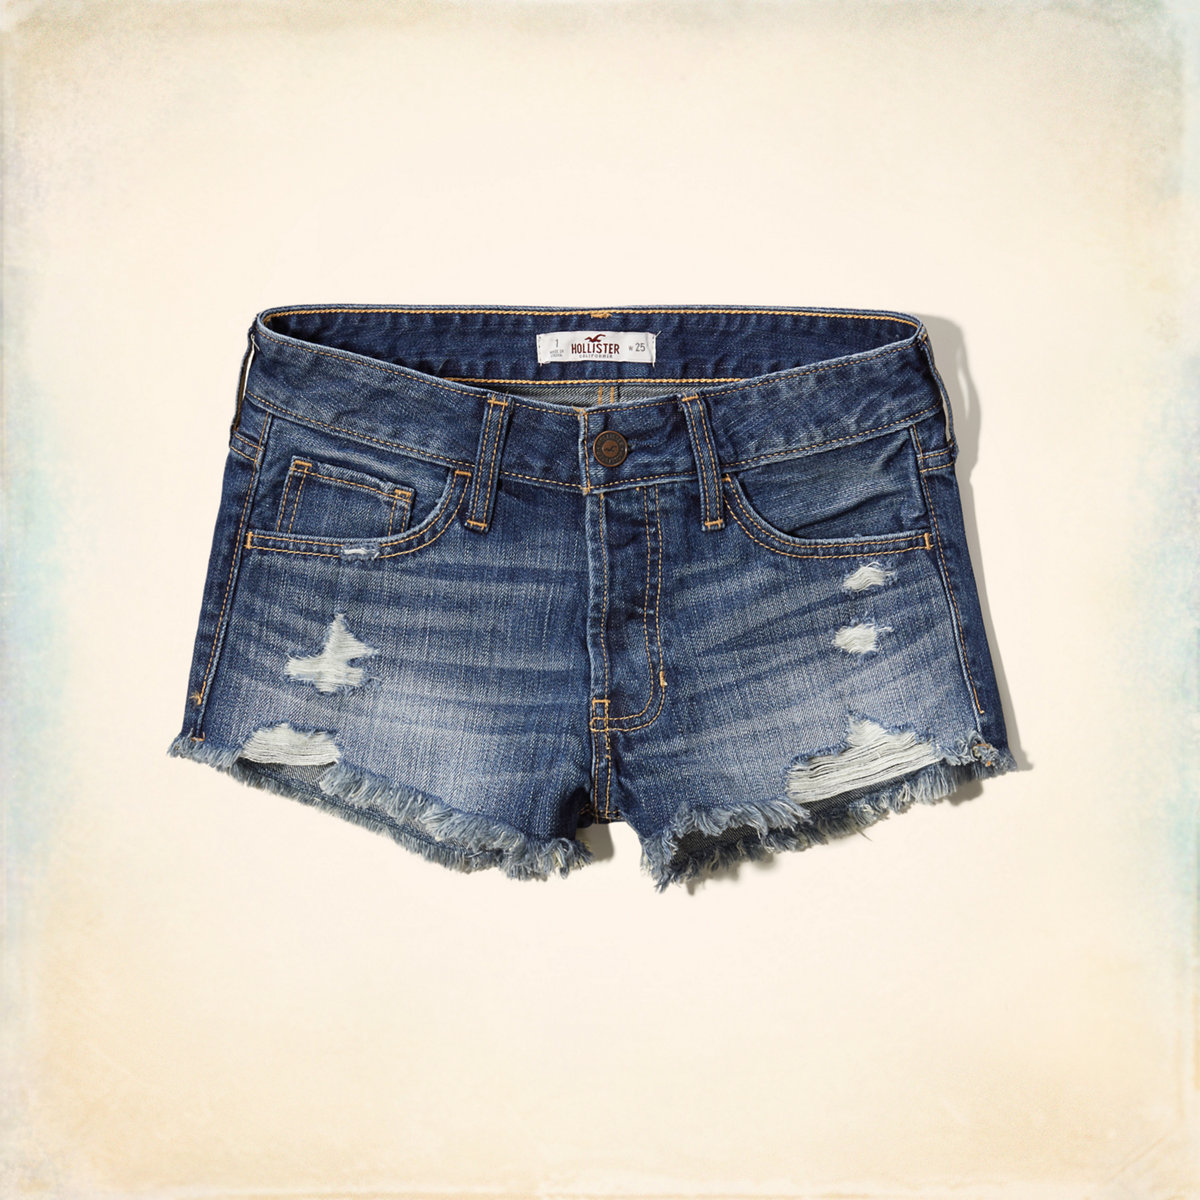 Hollister Low Rise Boyfriend Denim Shorts